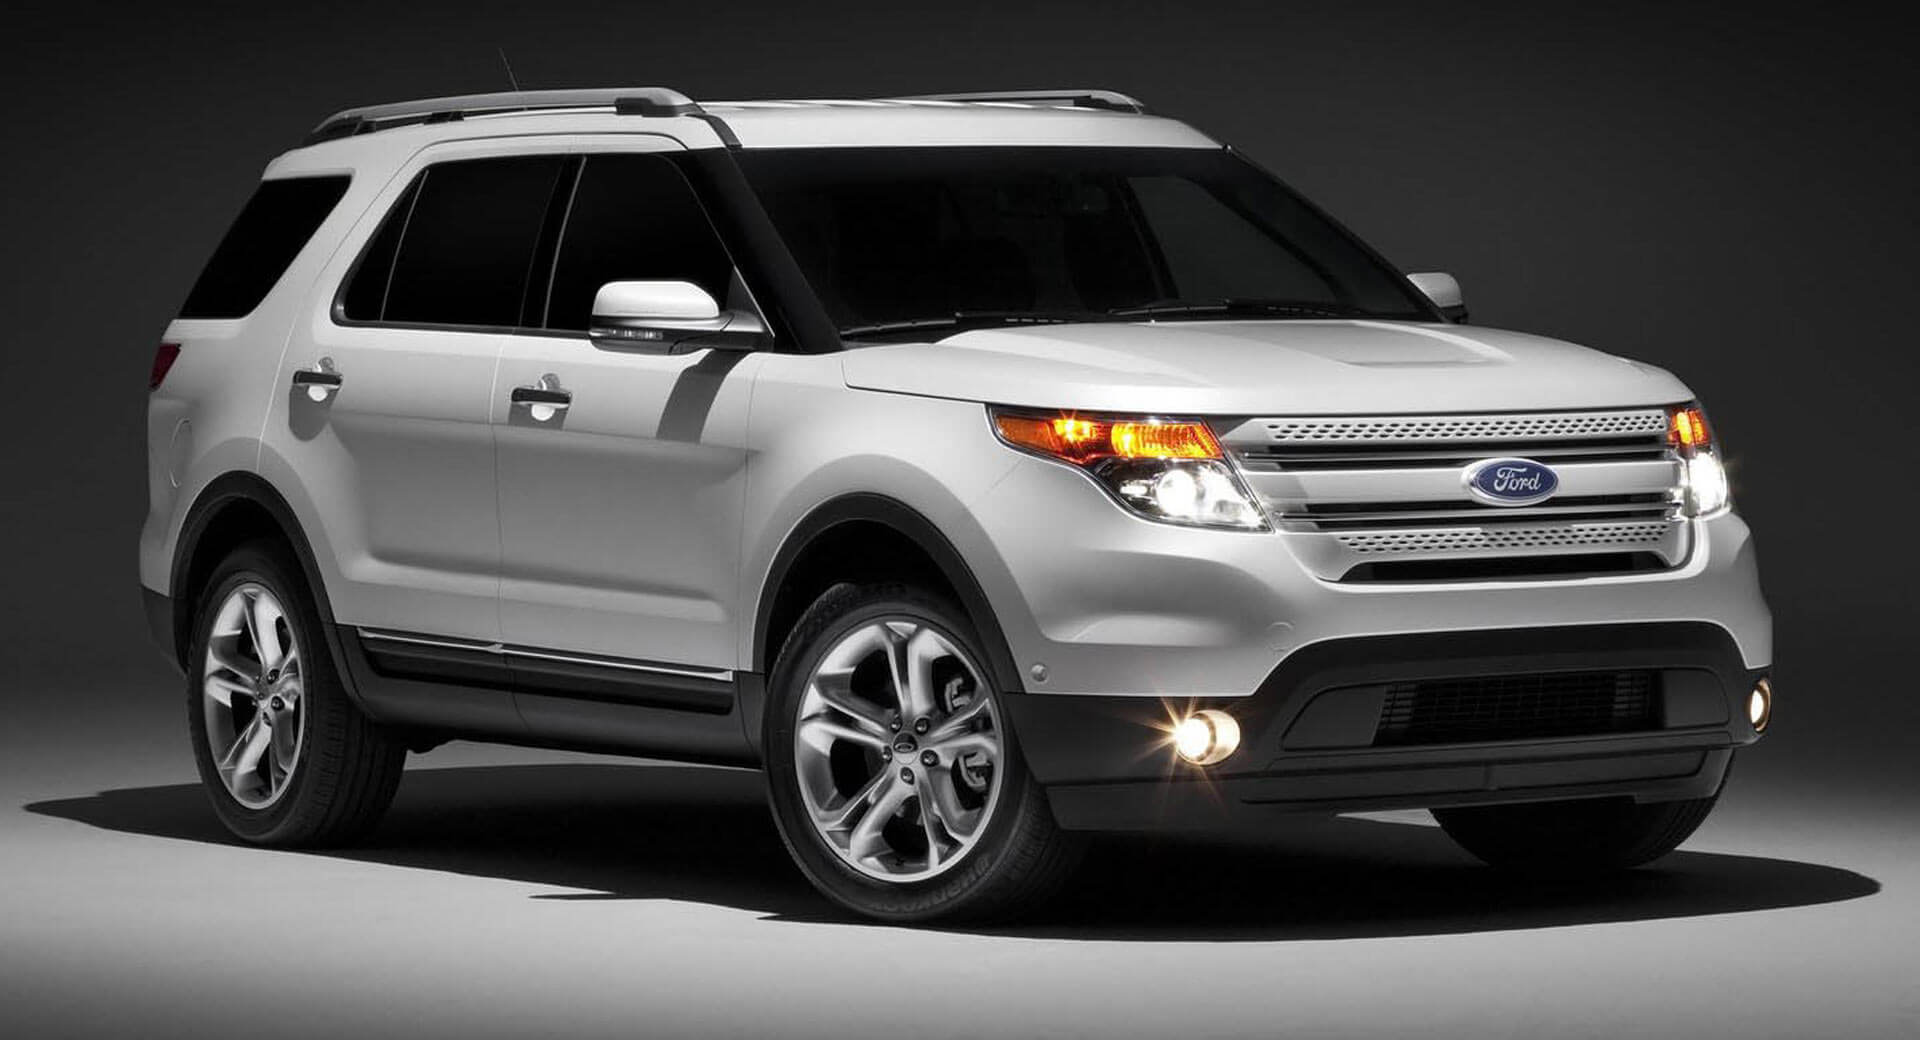 Ford Explorer Carbon Monoxide Recall >> Safety Group Urges Ford To Recall Explorer Over Carbon